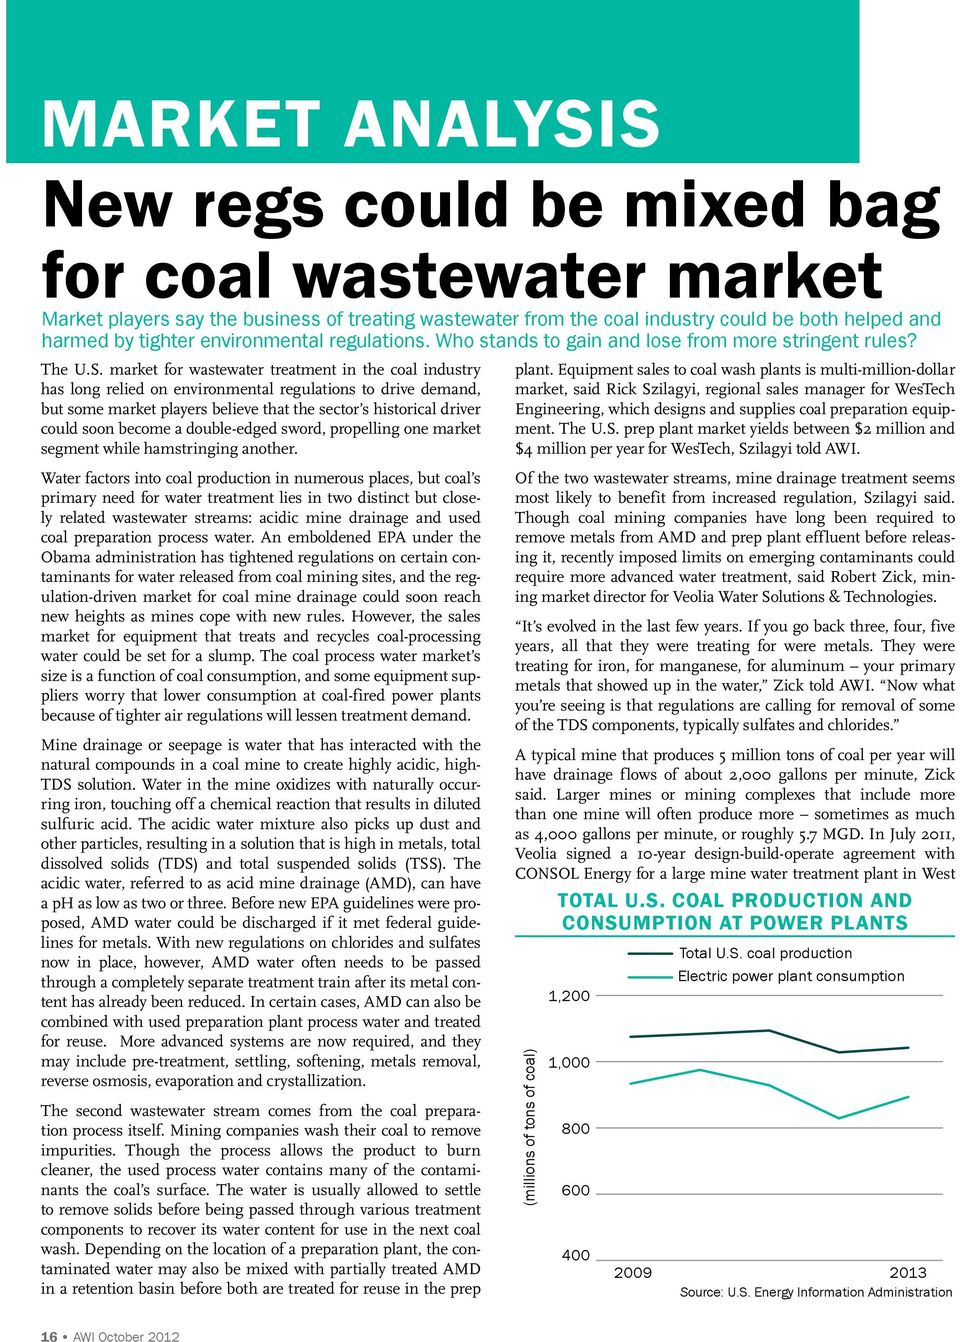 market for wastewater treatment in the coal industry has long relied on environmental regulations to drive demand, but some market players believe that the sector s historical driver could soon